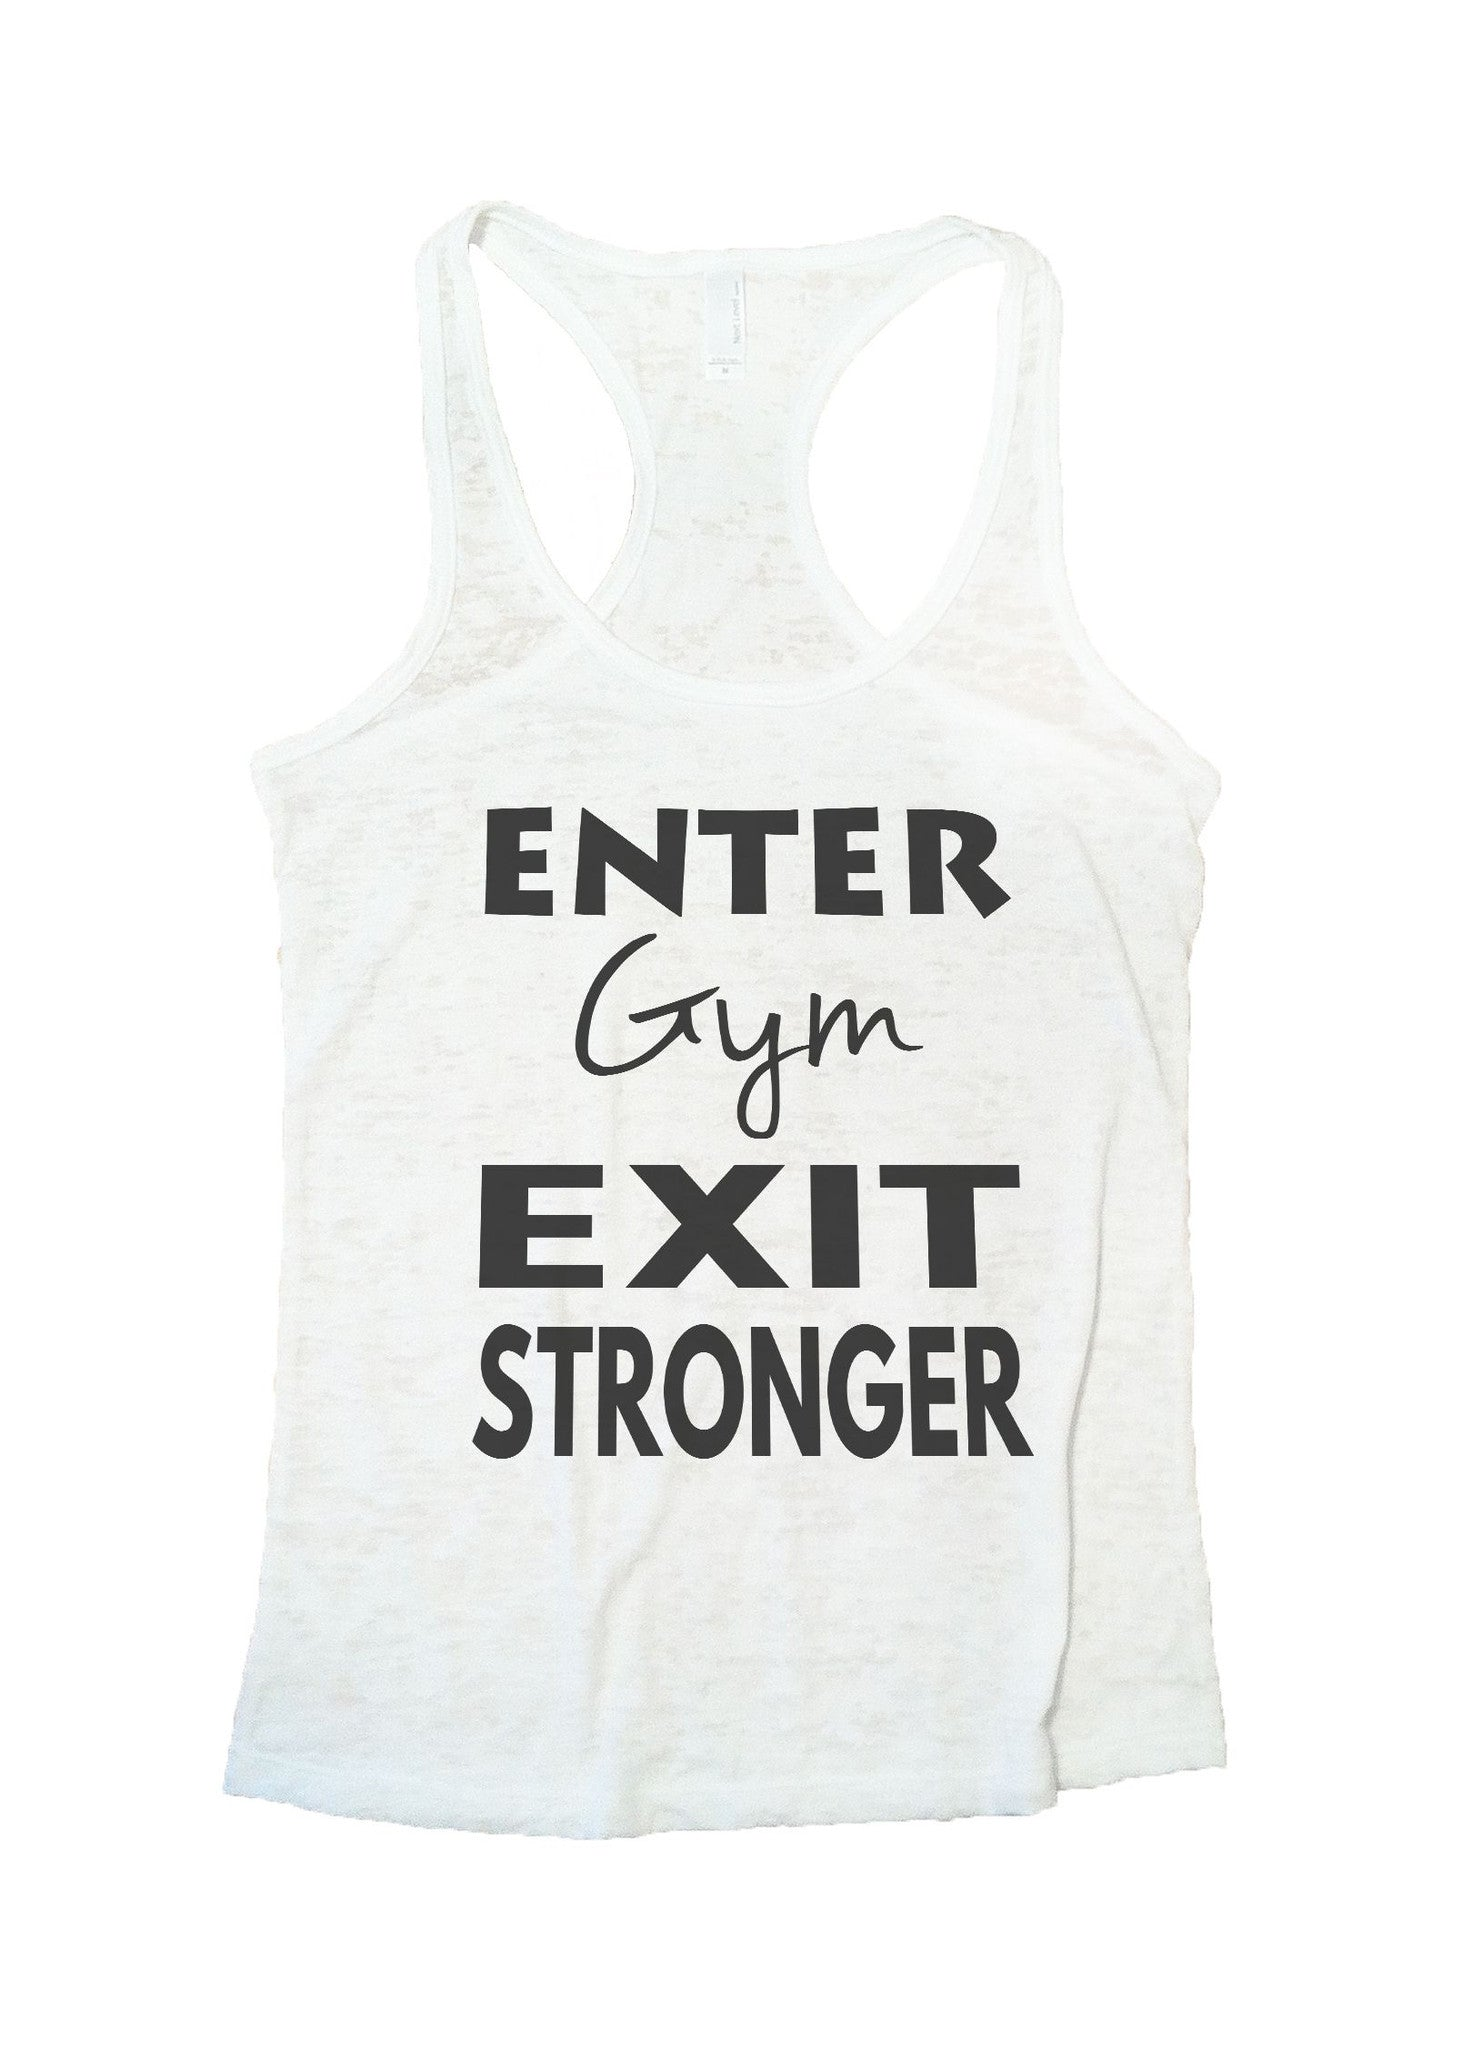 Enter Gym Exit Stronger Burnout Tank Top By BurnoutTankTops.com - 853 - Funny Shirts Tank Tops Burnouts and Triblends  - 6